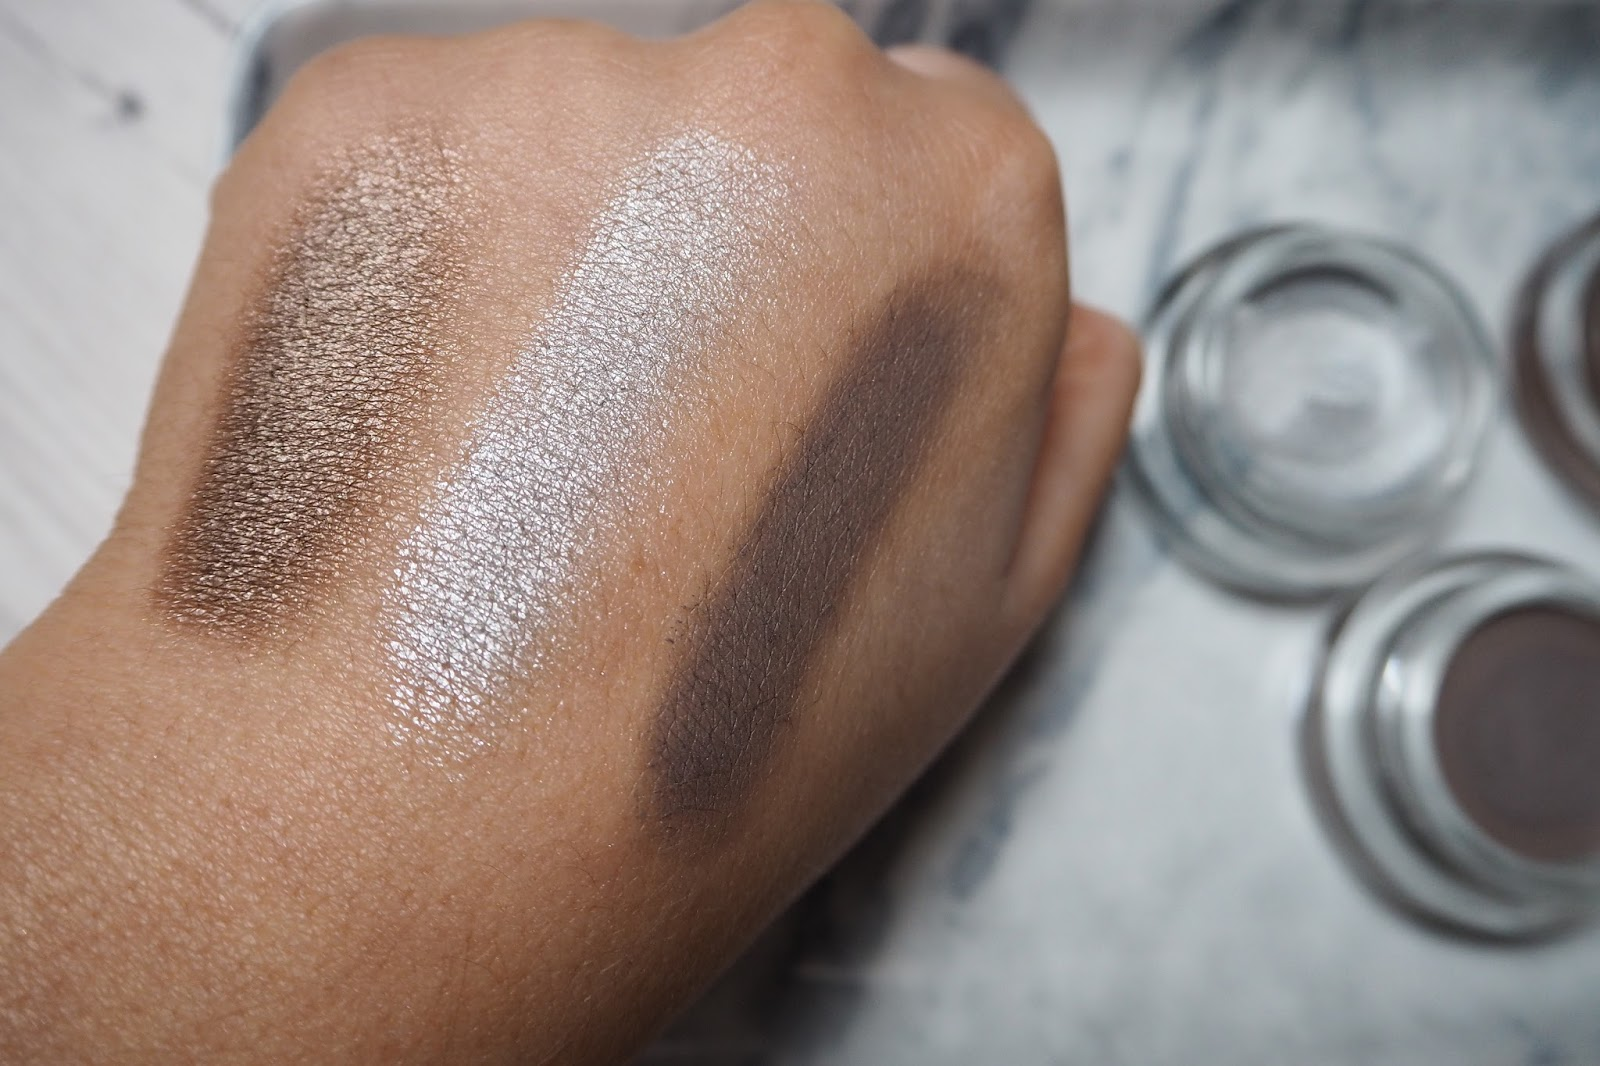 Maybelline Colour 24hr Tattoo Gel Shadow  Swatches - Rachel Nicole UK Blogger